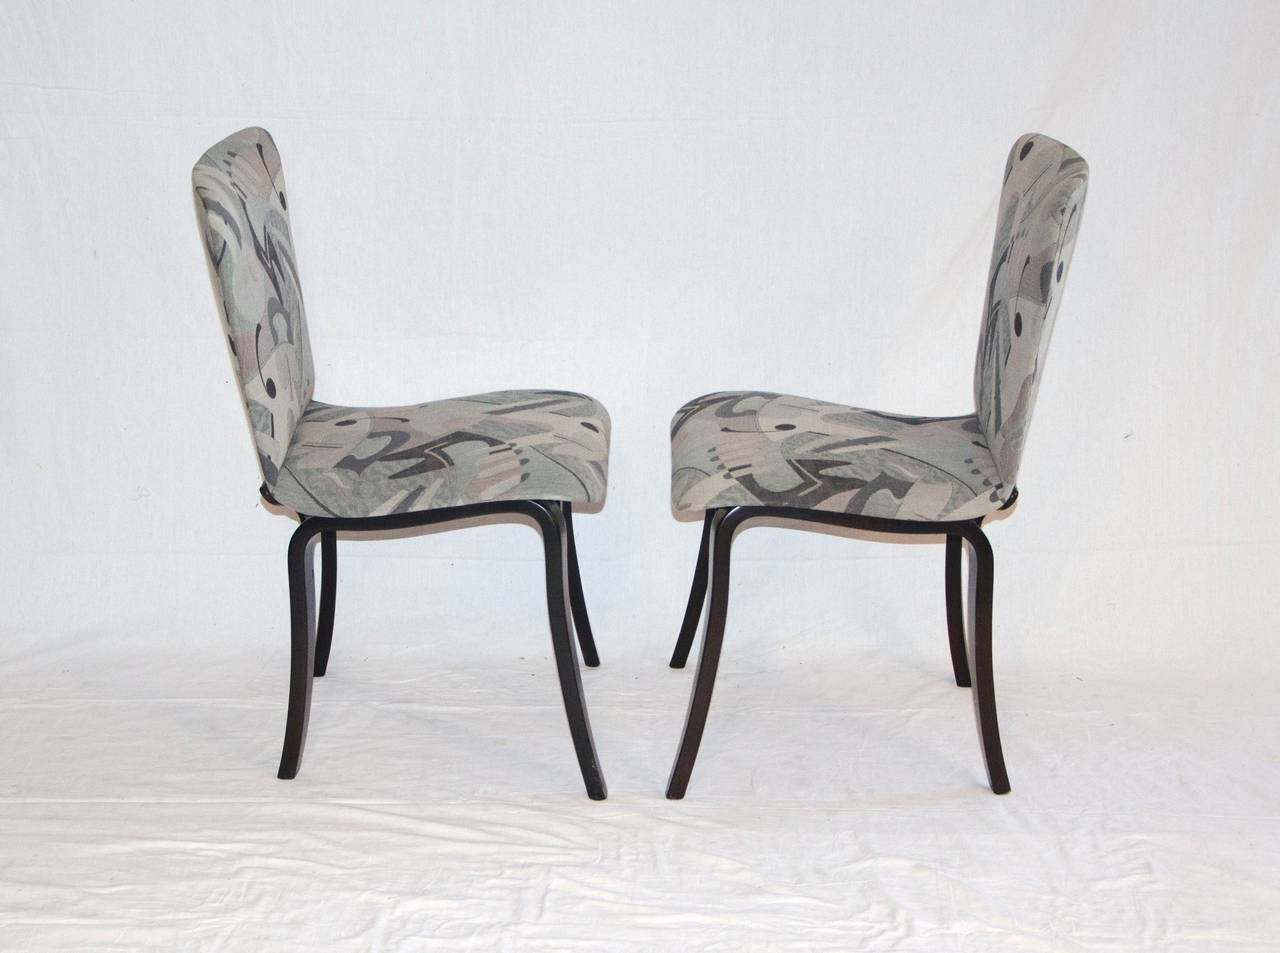 20th Century Mid Century Bent Ply Dining Chairs - Thaden-Jordan For Sale